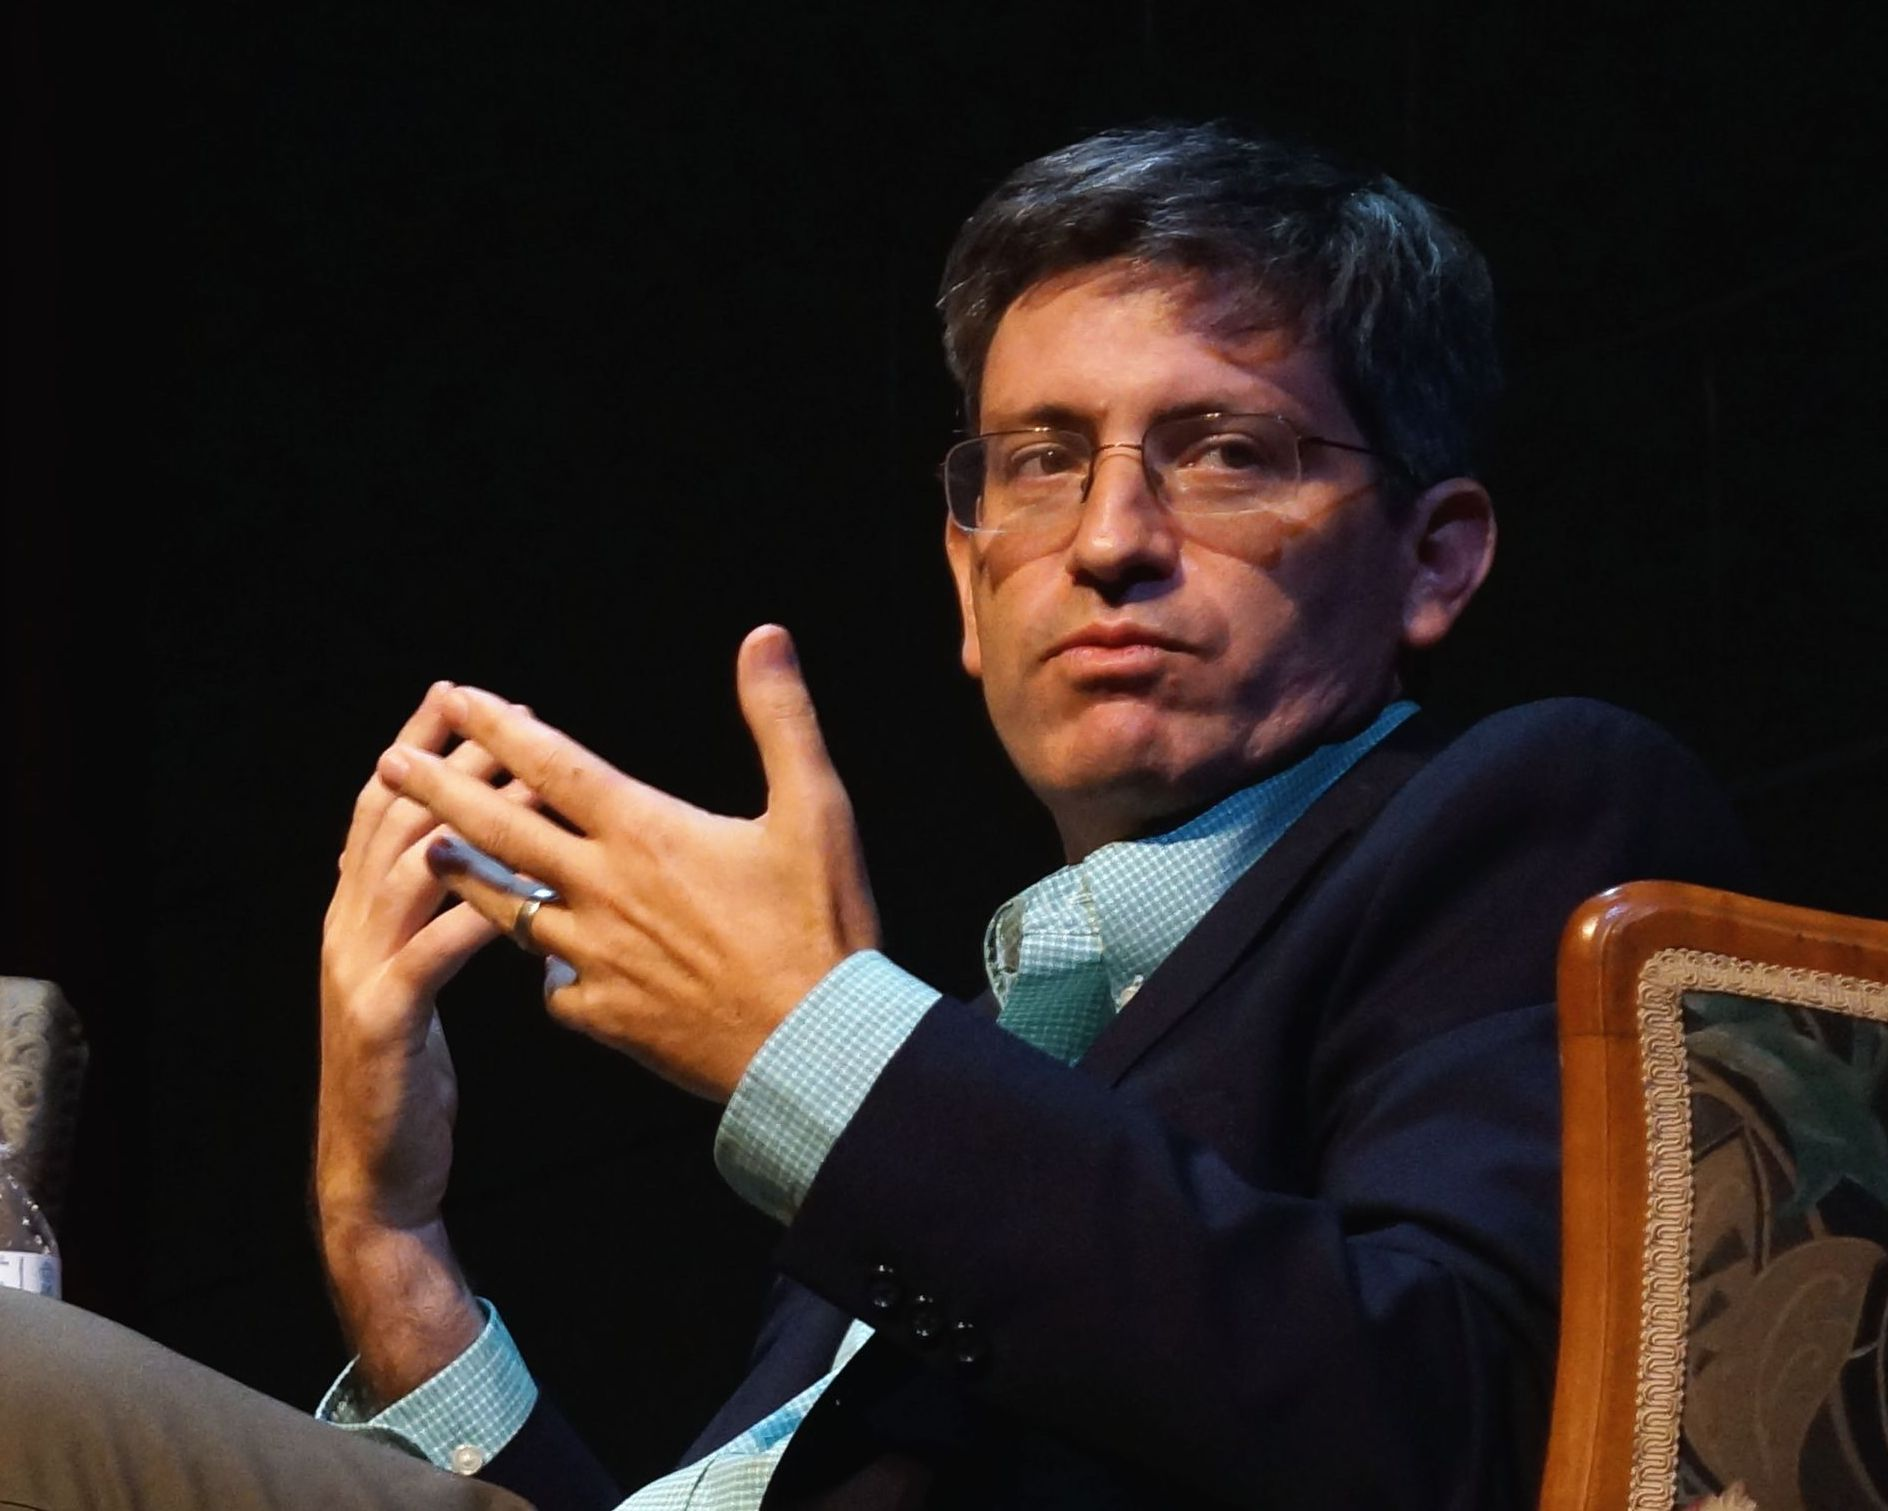 Science writer Carl Zimmer on his new book, crazy genetics and the ethics of CRISPR